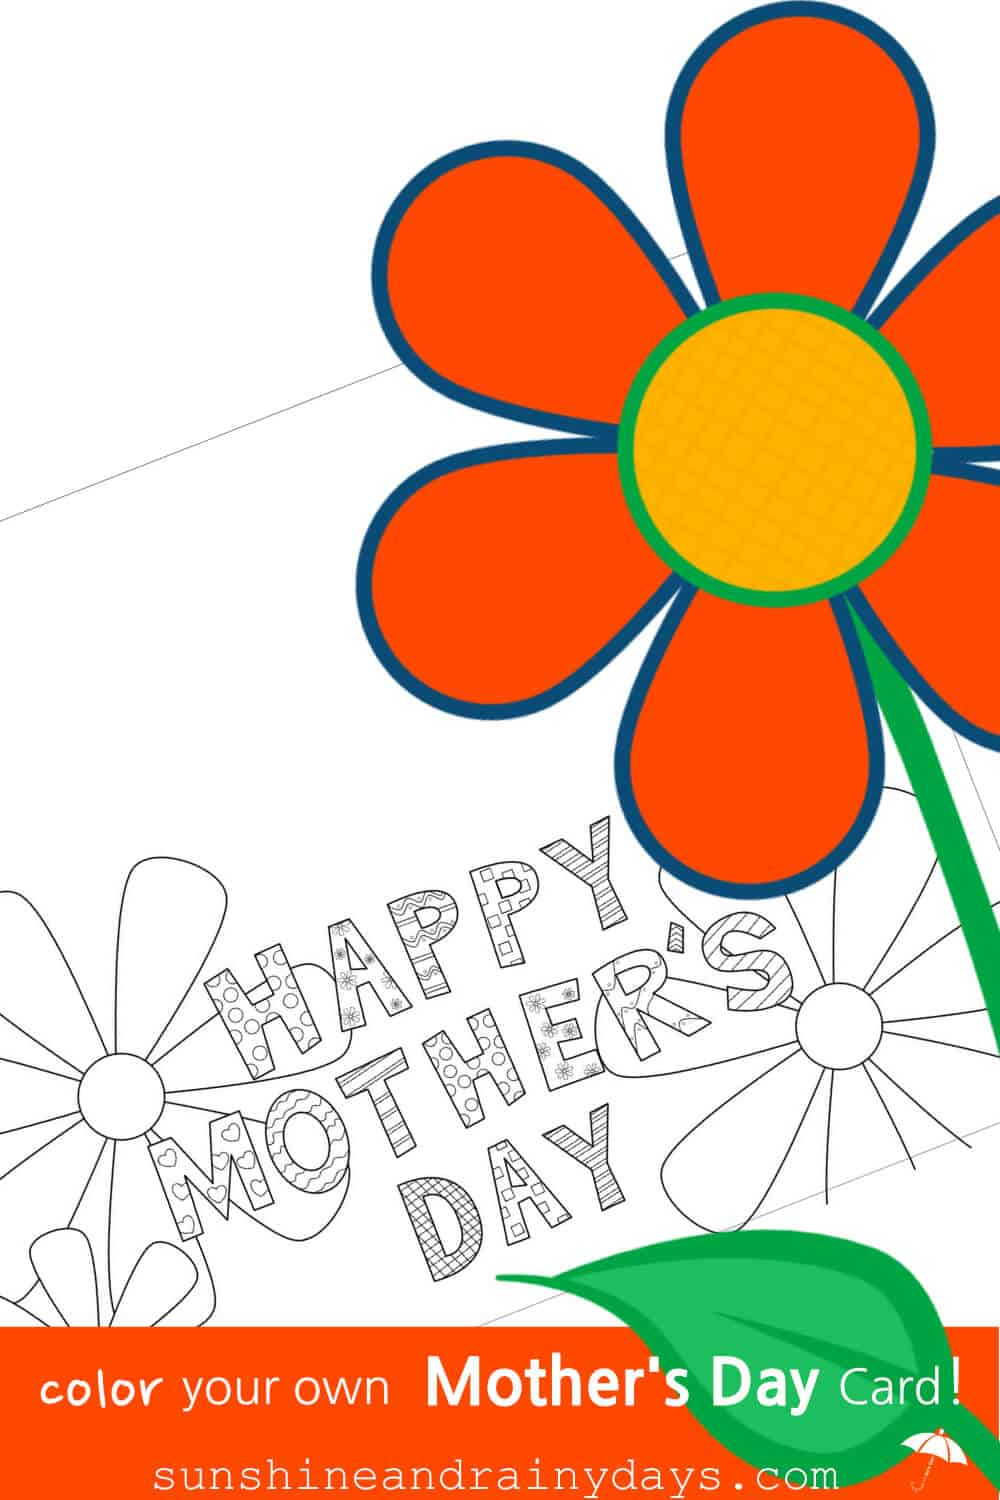 Mother's Day is the perfect opportunity to show your creative side with a Happy Mother's Day Free Printable Card! It's FUN, it's easy, and Mom will LOVE it!